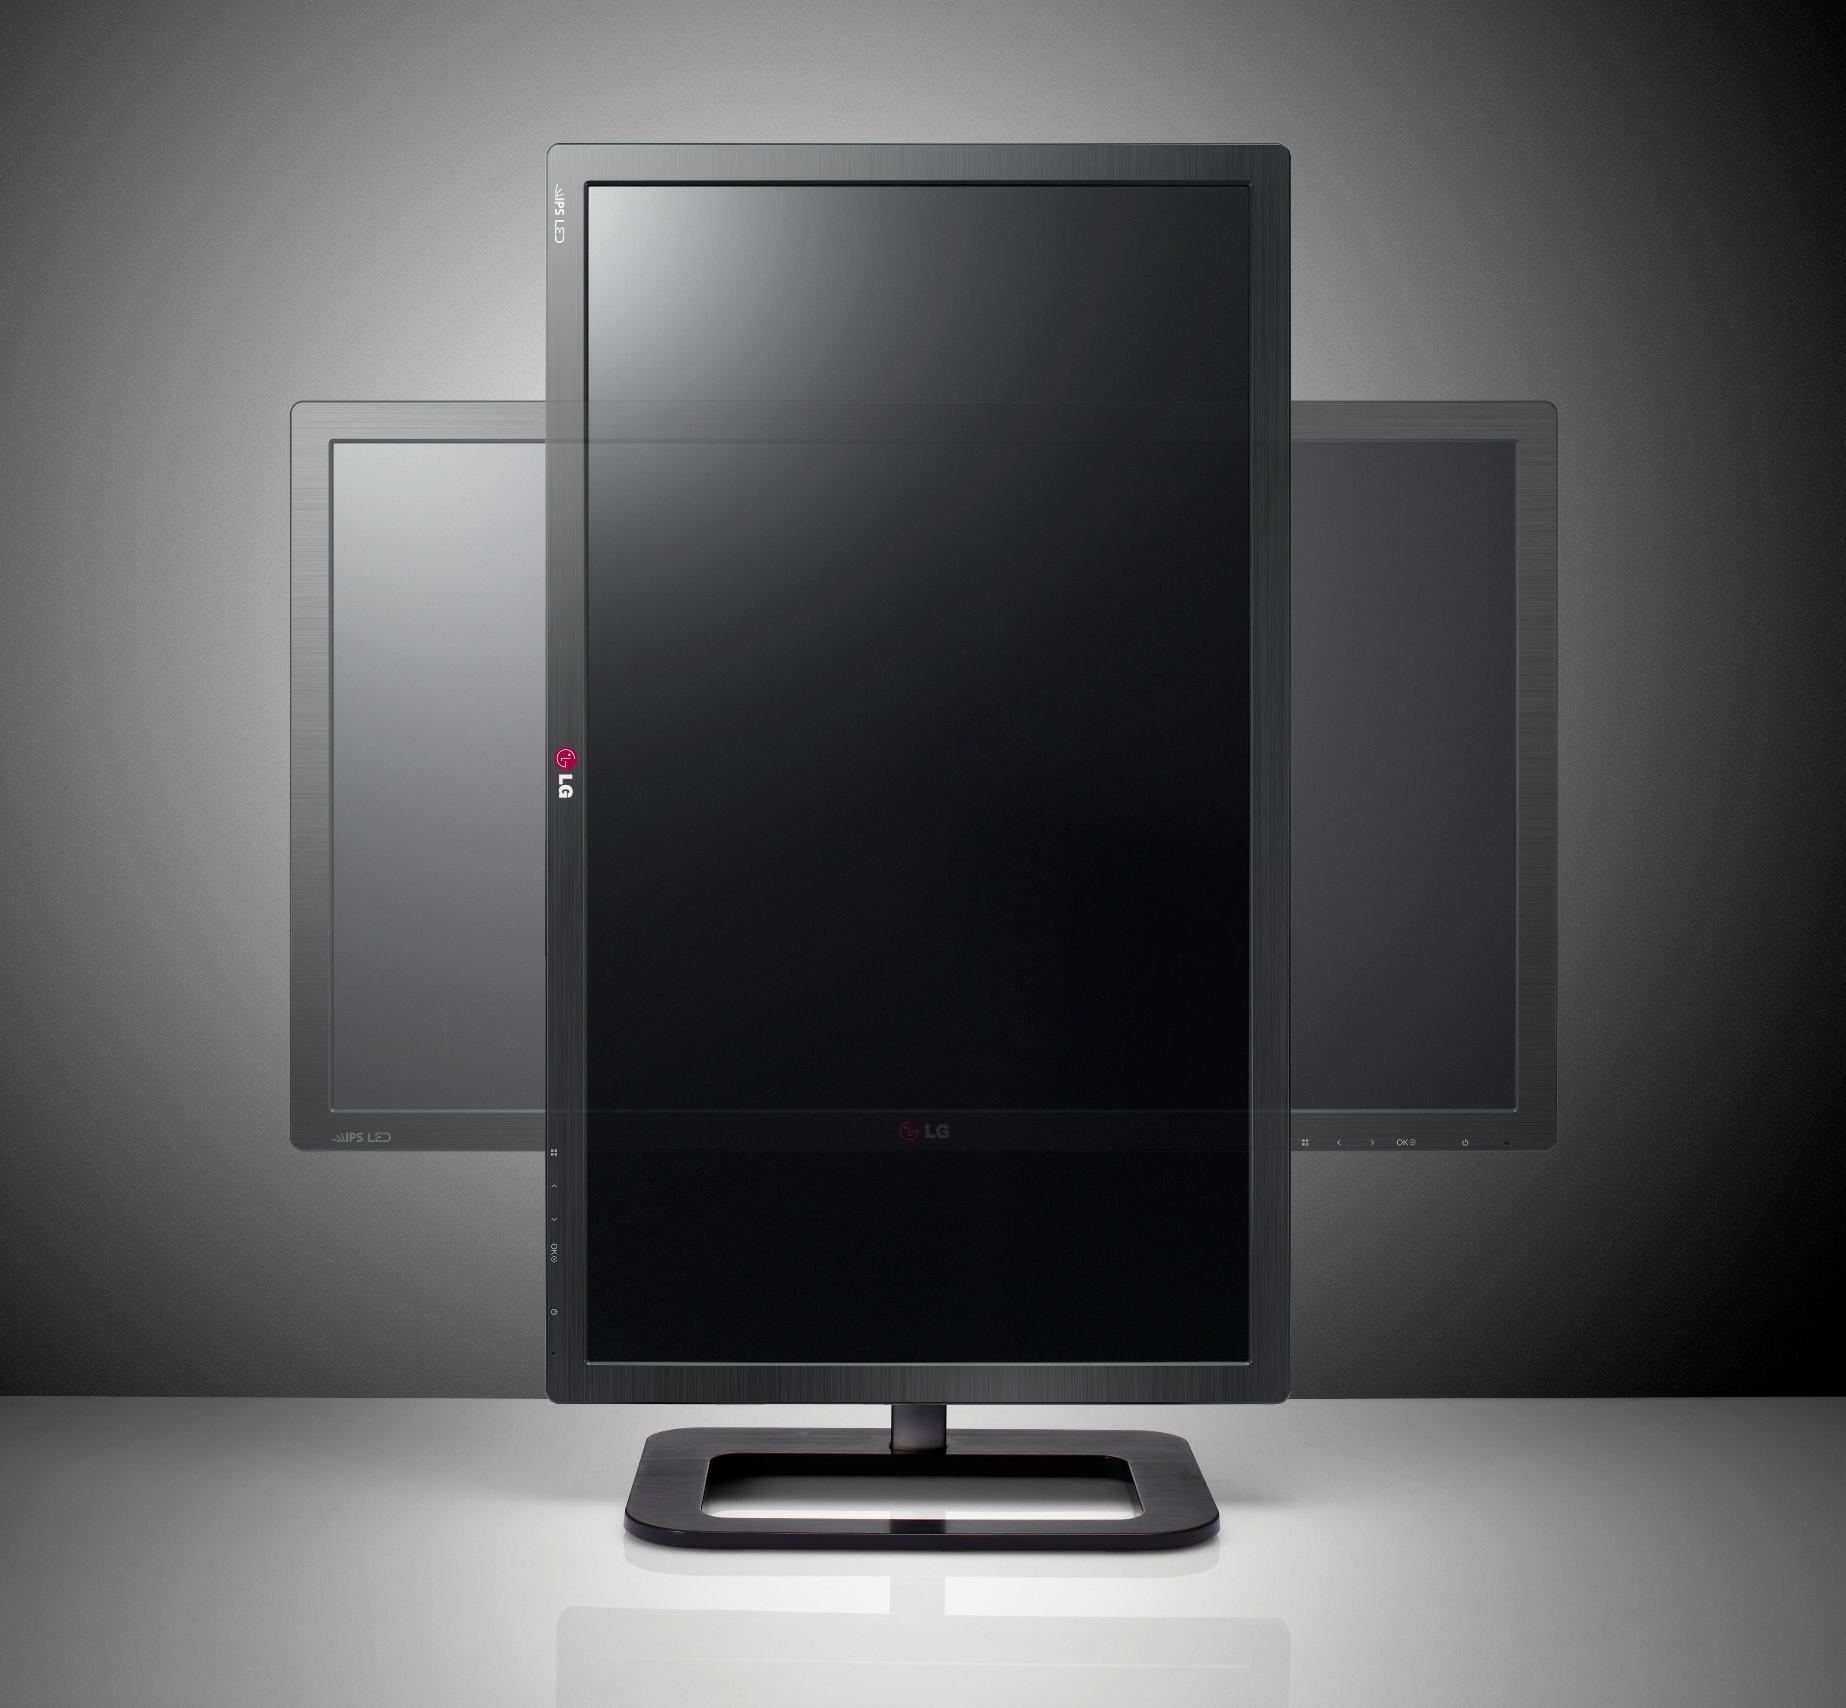 MONITOR_LINE_UP_4_small